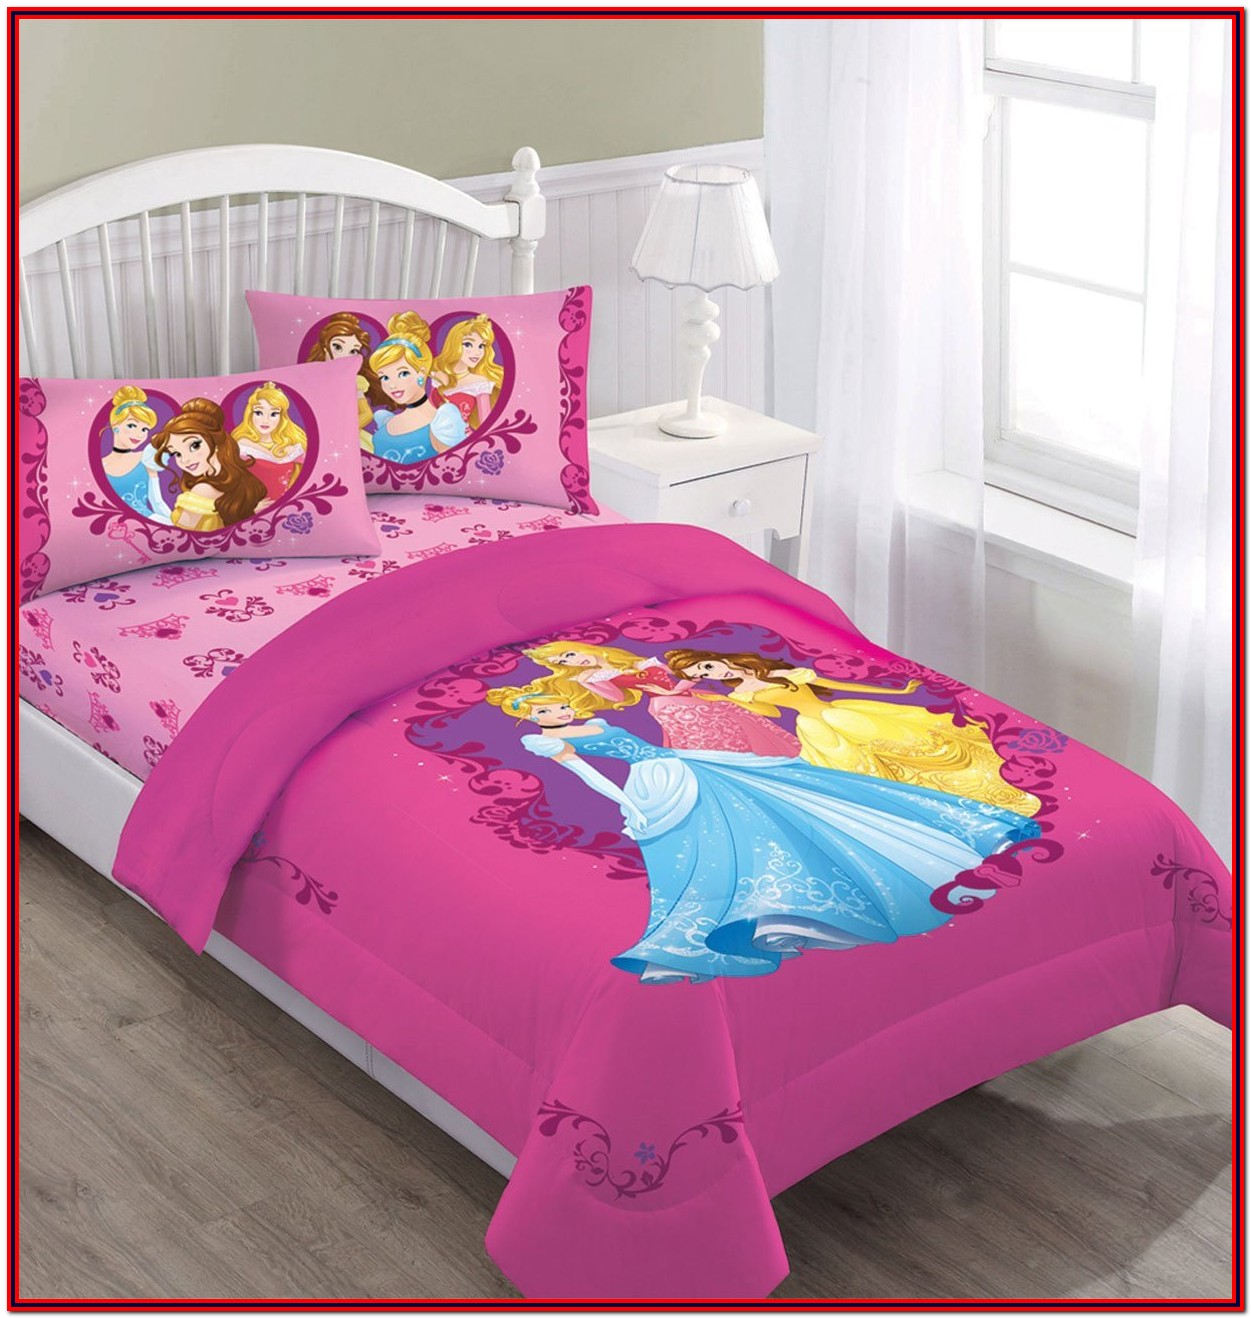 Twin Bed For Toddler Amazon